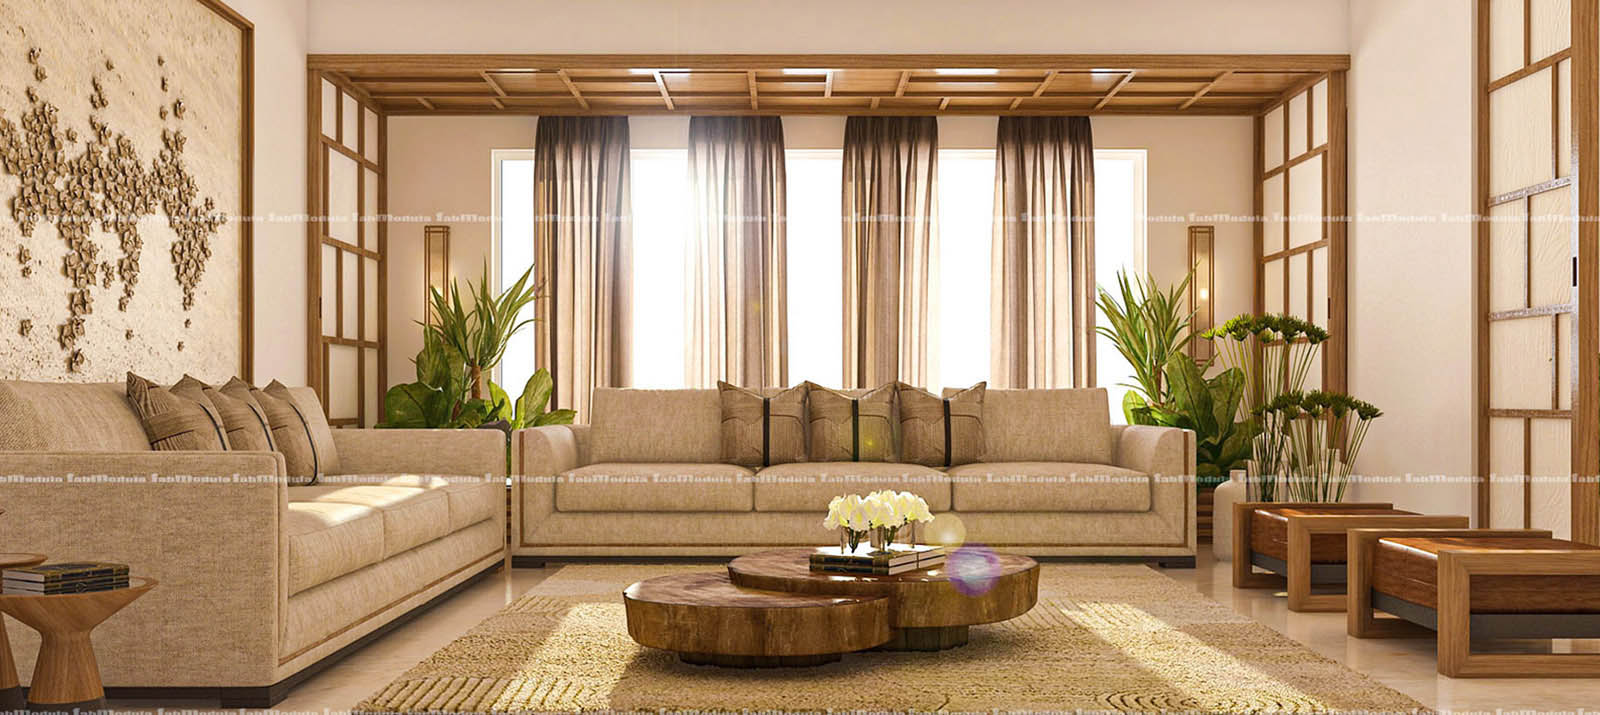 Homes Interior Designs Fabmodula Interior Designers Bangalore Best Interior Design